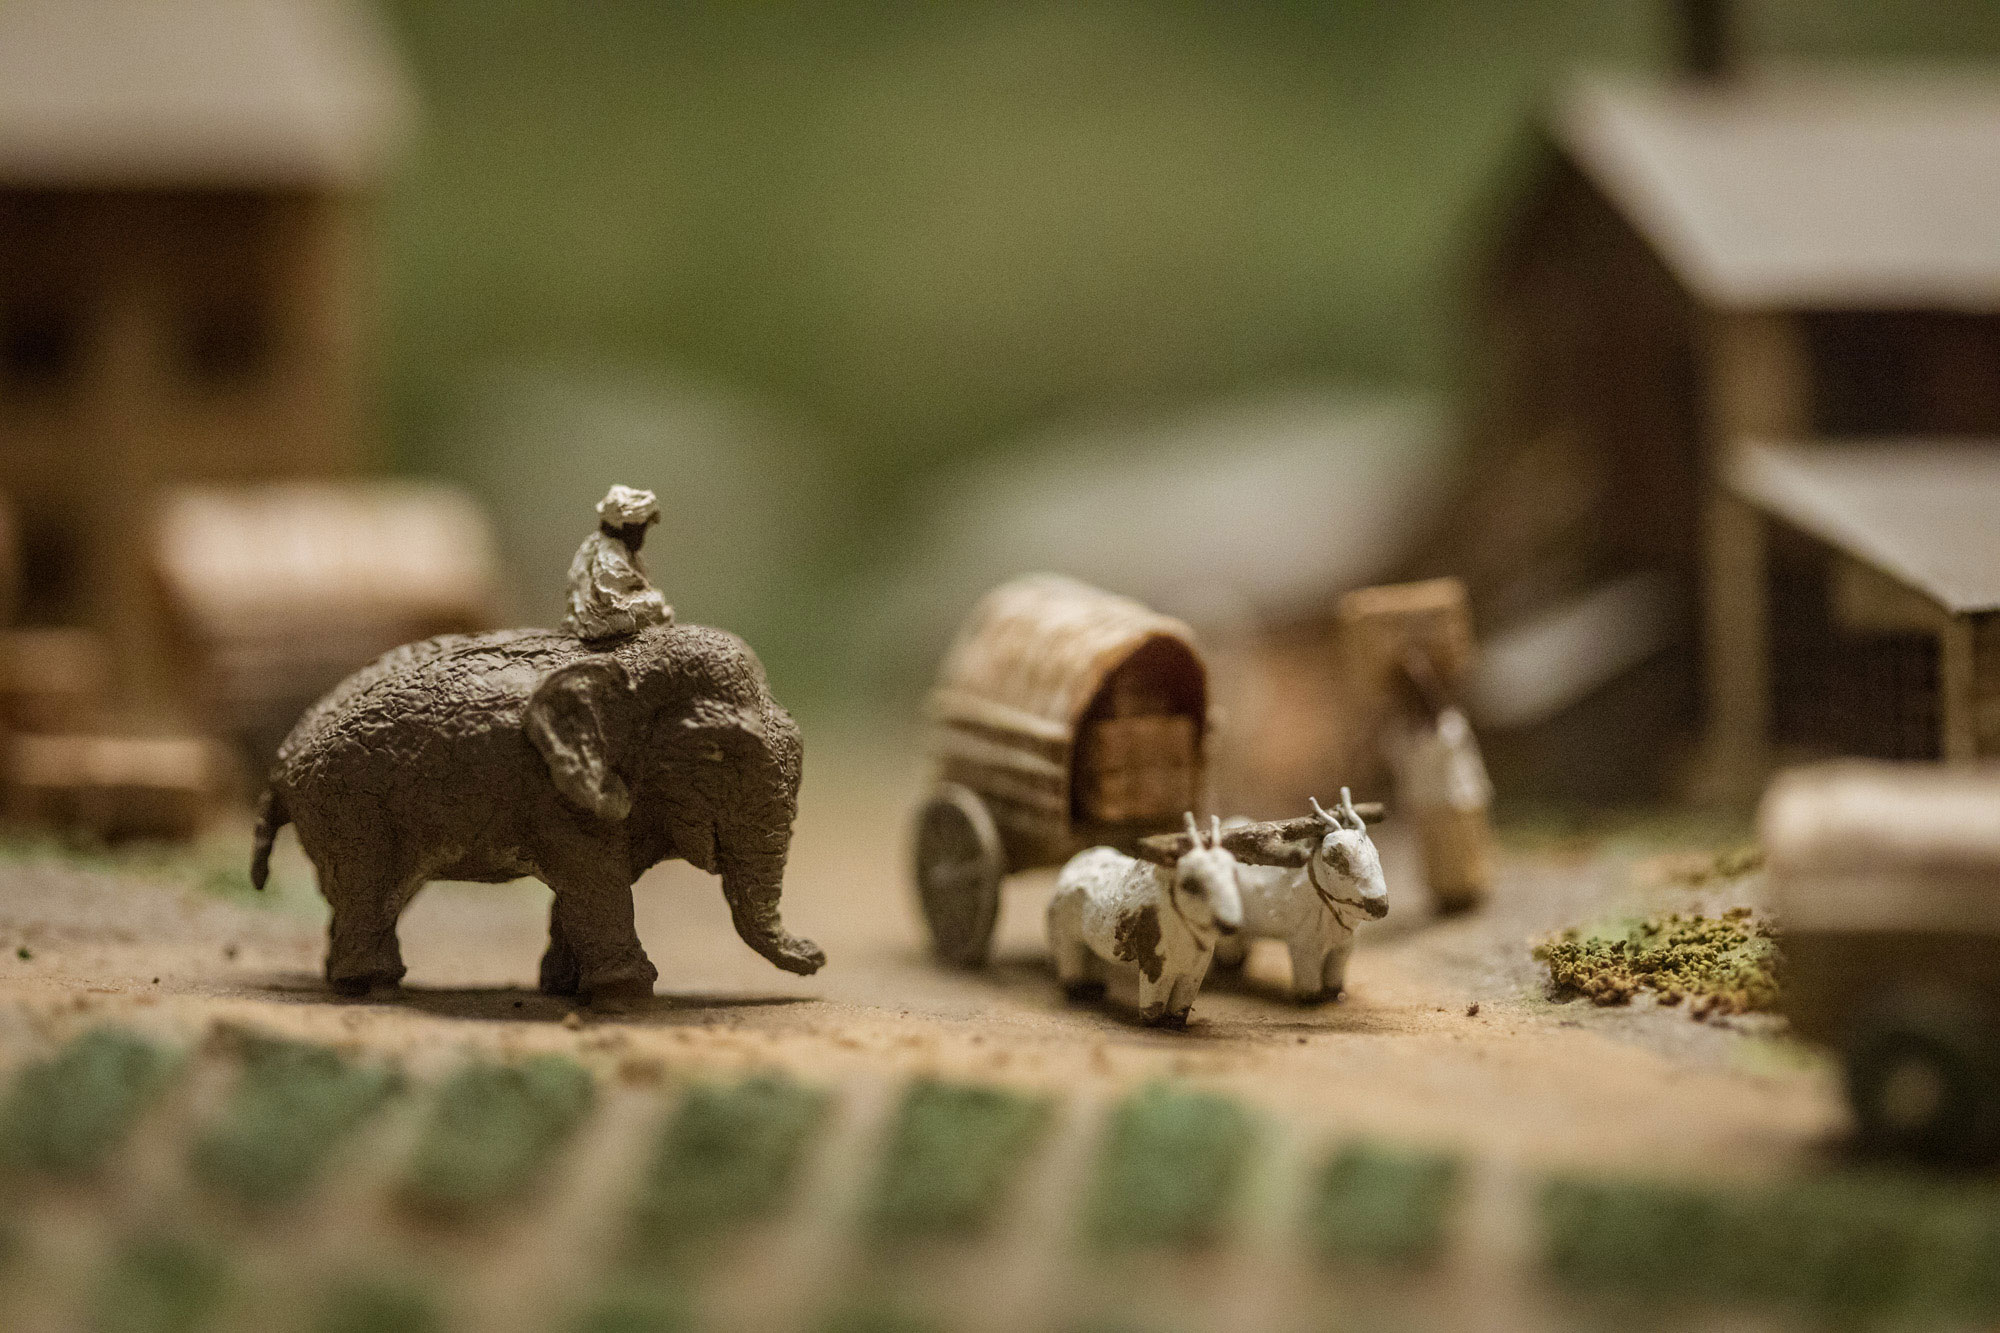 Close-up view of a diorama featuring a man riding an elephant and two goats pulling a wagon.